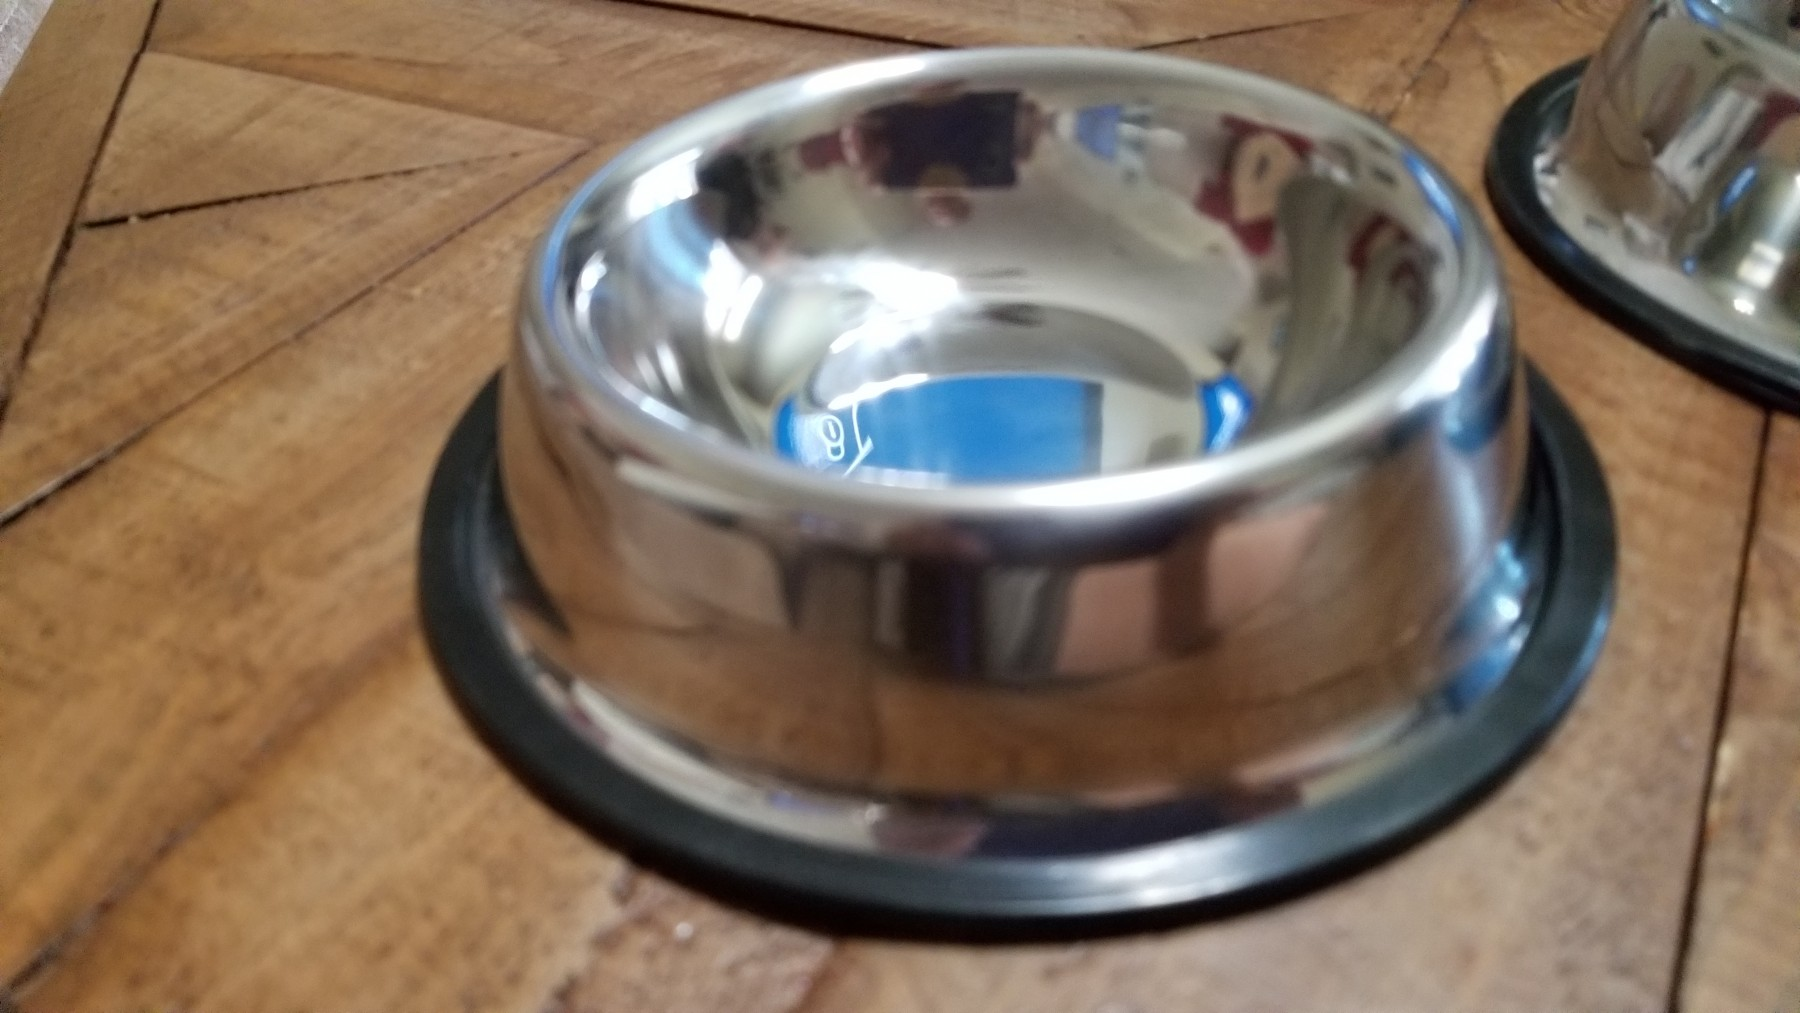 Nice bowls, but small wells - good for small dogs/cats